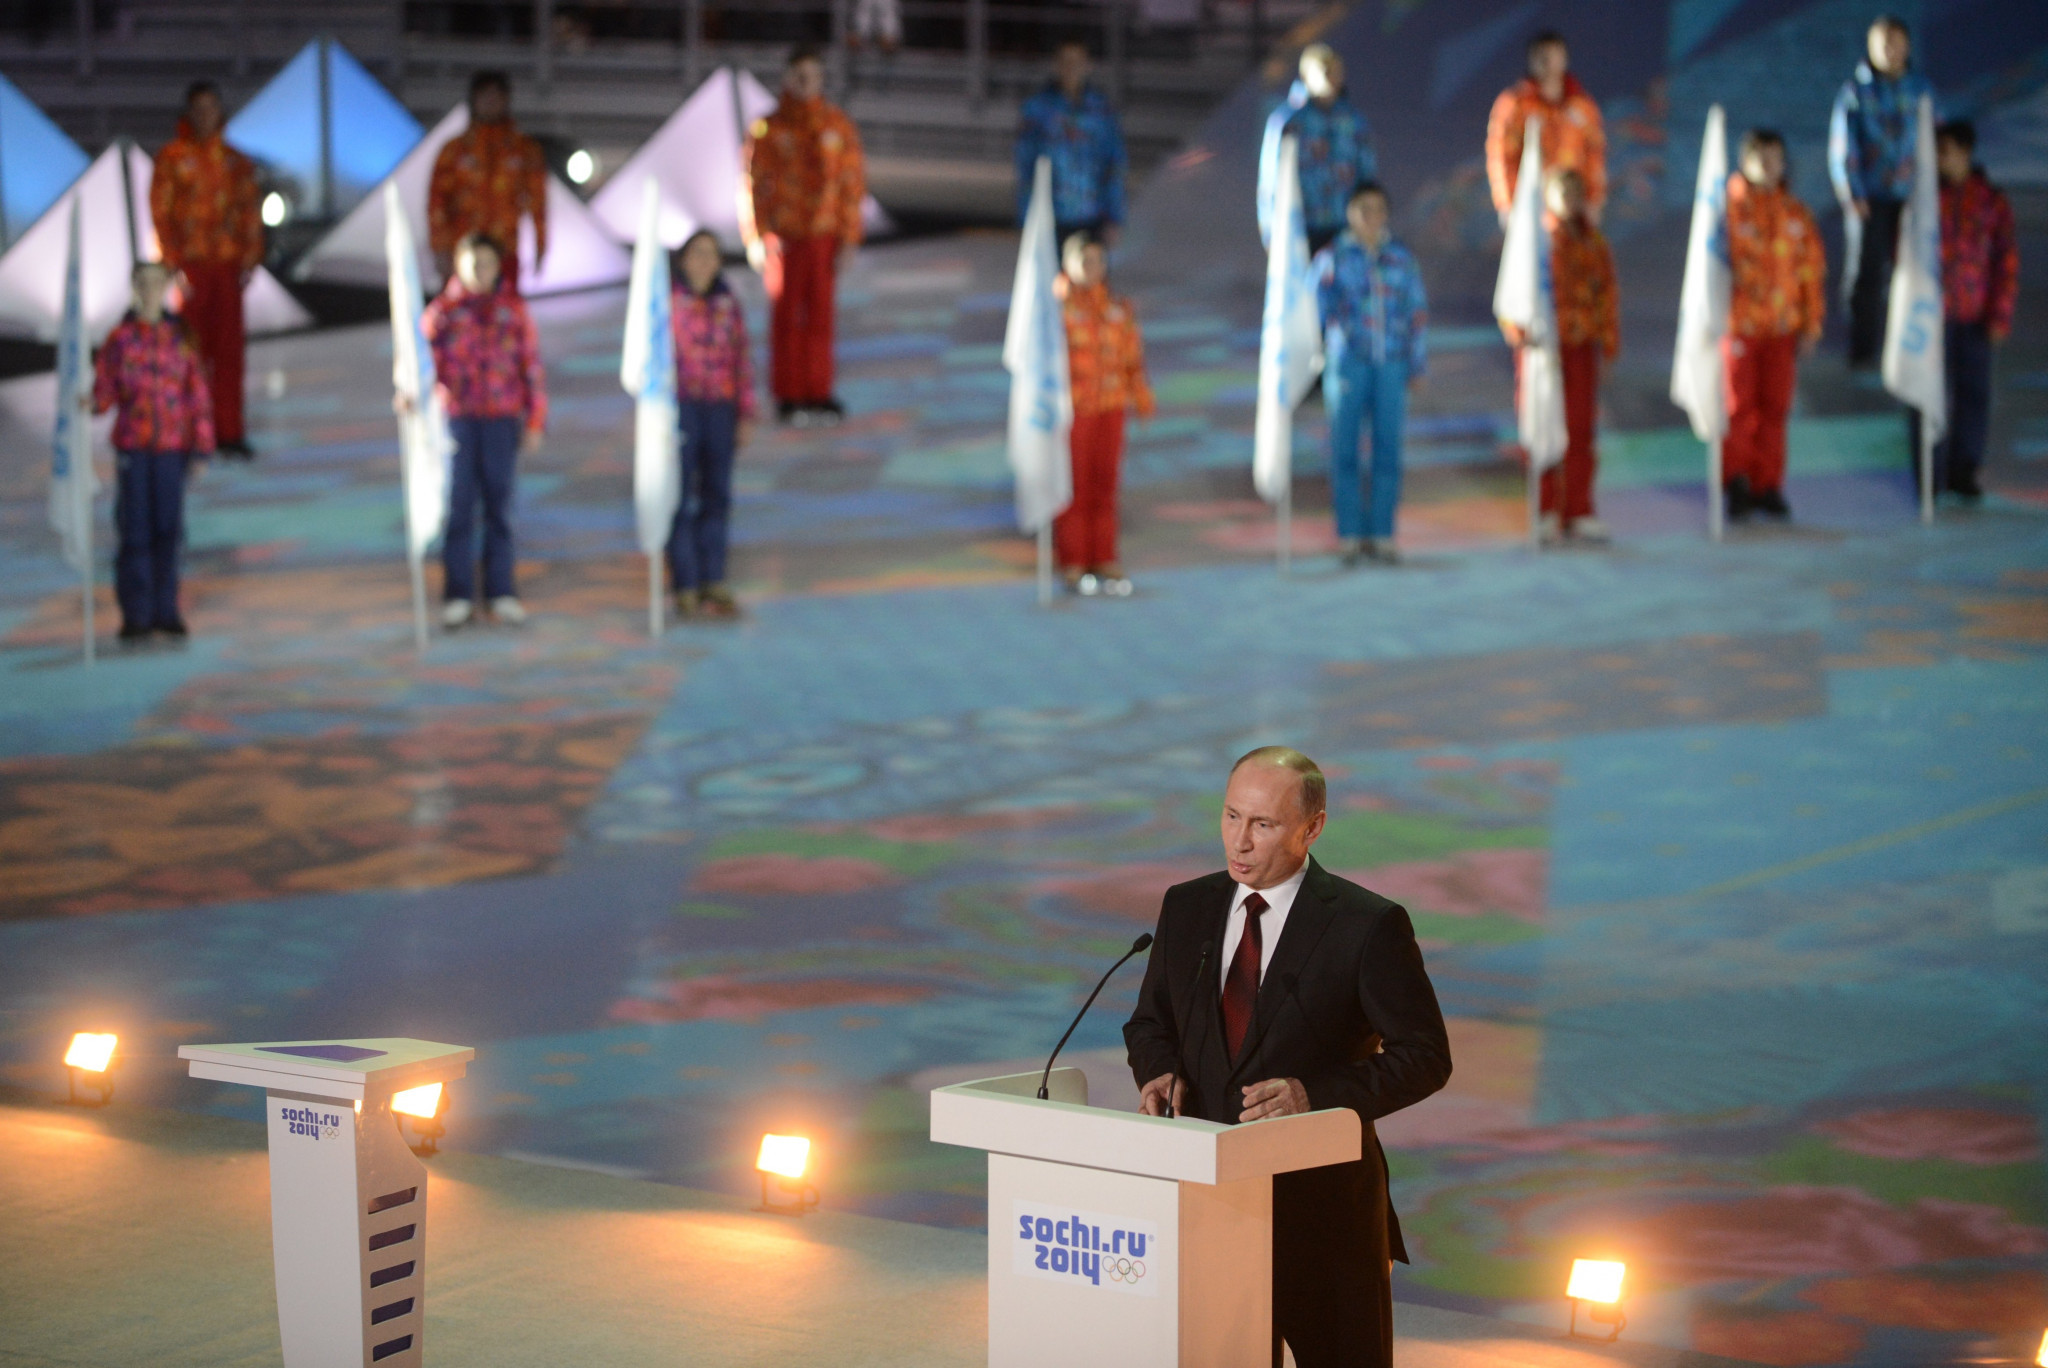 Russia's President Vladimir Putin speaks at a ceremony celebrating the one year countdown to the Sochi 2014 Winter Olympics opening at the Bolshoi Ice Dome rink in February 2013 ©Getty Images